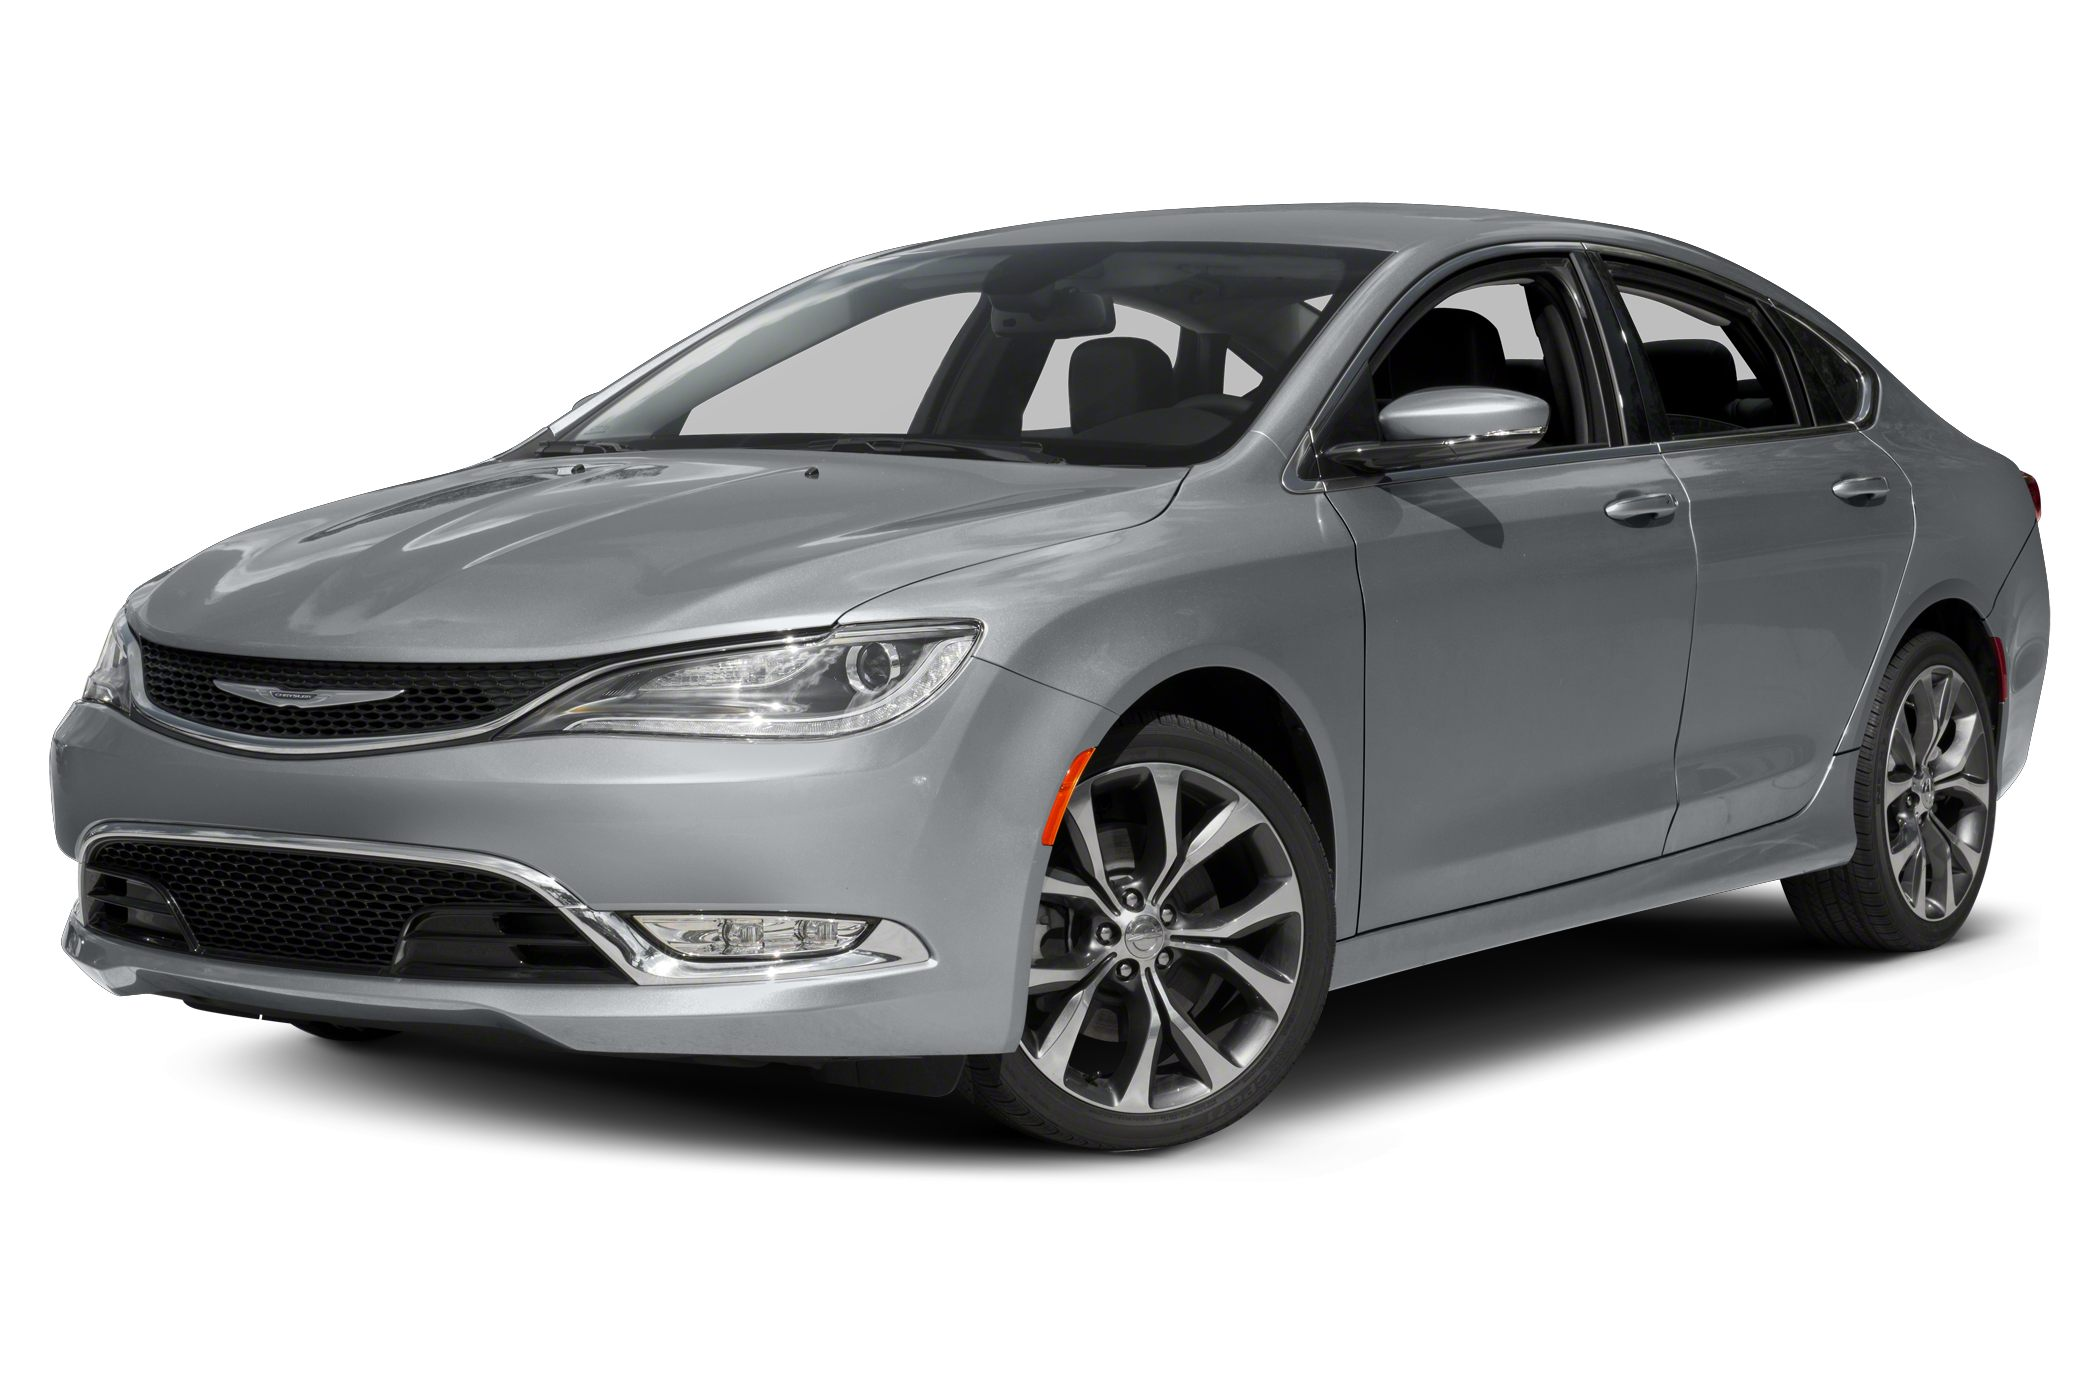 2015 Chrysler 200 C For Internet Pricing and InformationPlease call Teresa Brown  866-387-3798It